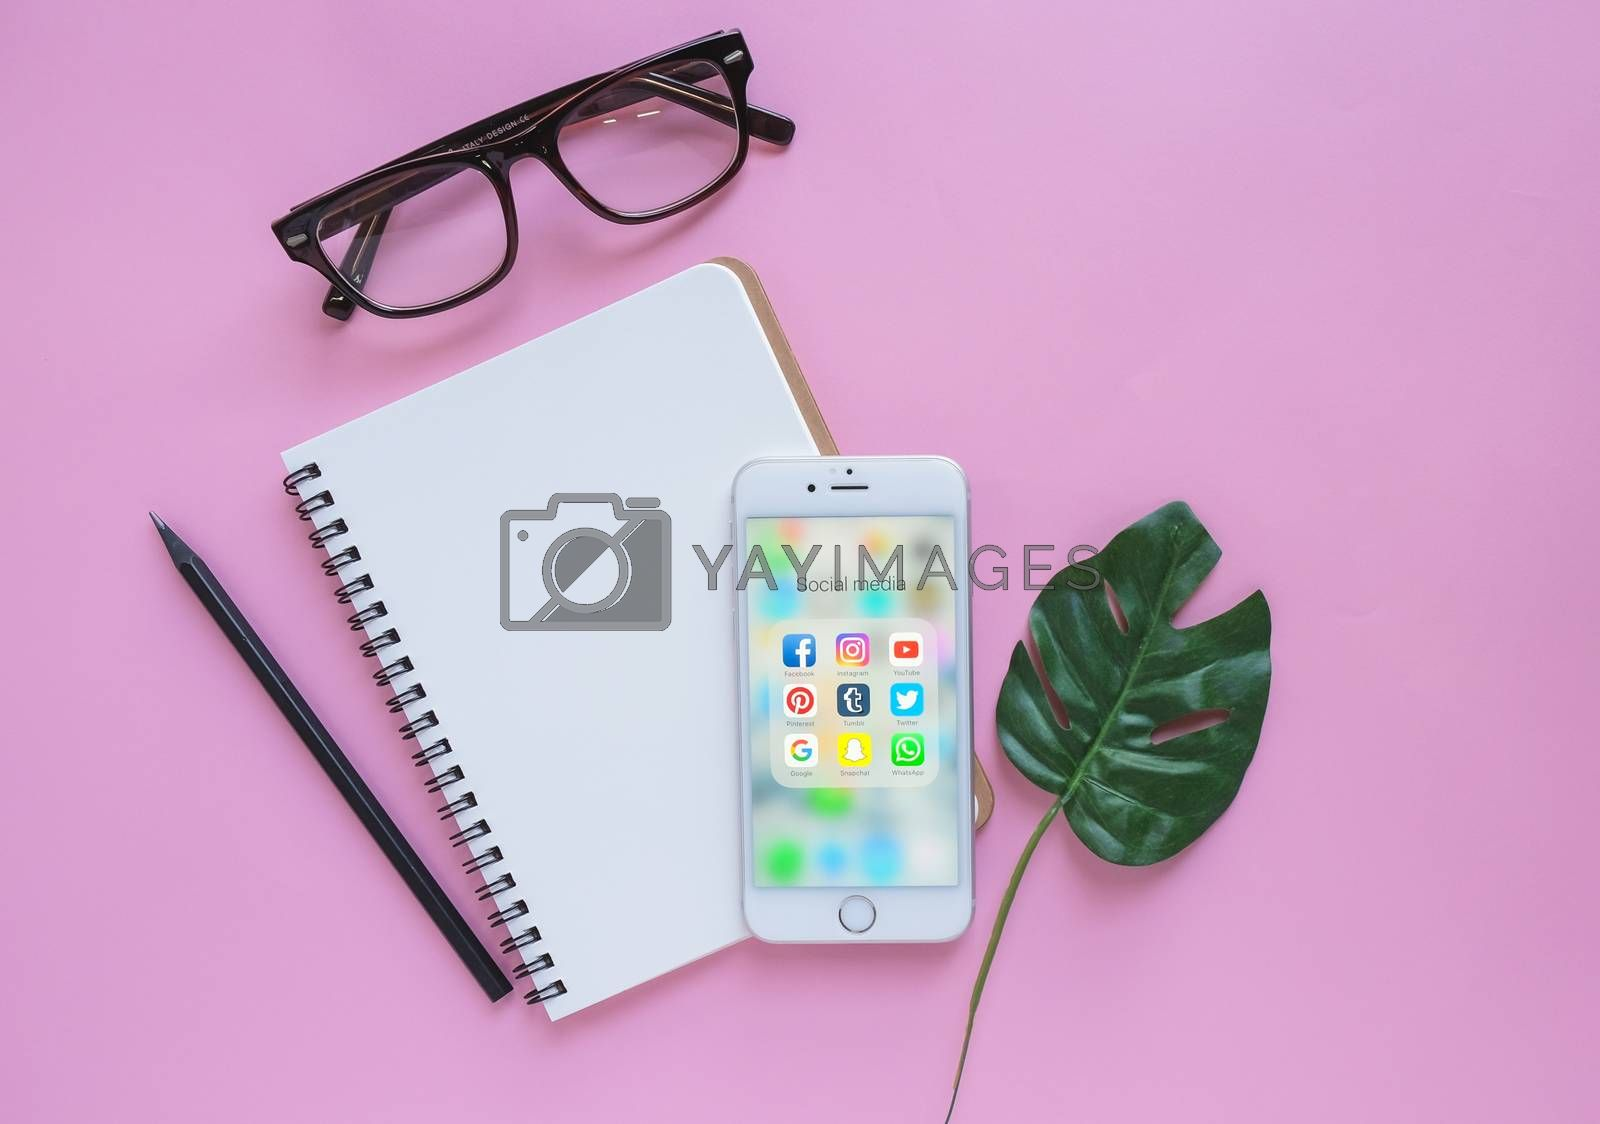 BANGKOK, THAILAND - NOVEMBER 28, 2016:  Group of Popular Social networks icons showing on Apple iPhone 6s screen with notebook, eyeglasses and green plant on pink background on pink background, Social media are most popular tool for communication.